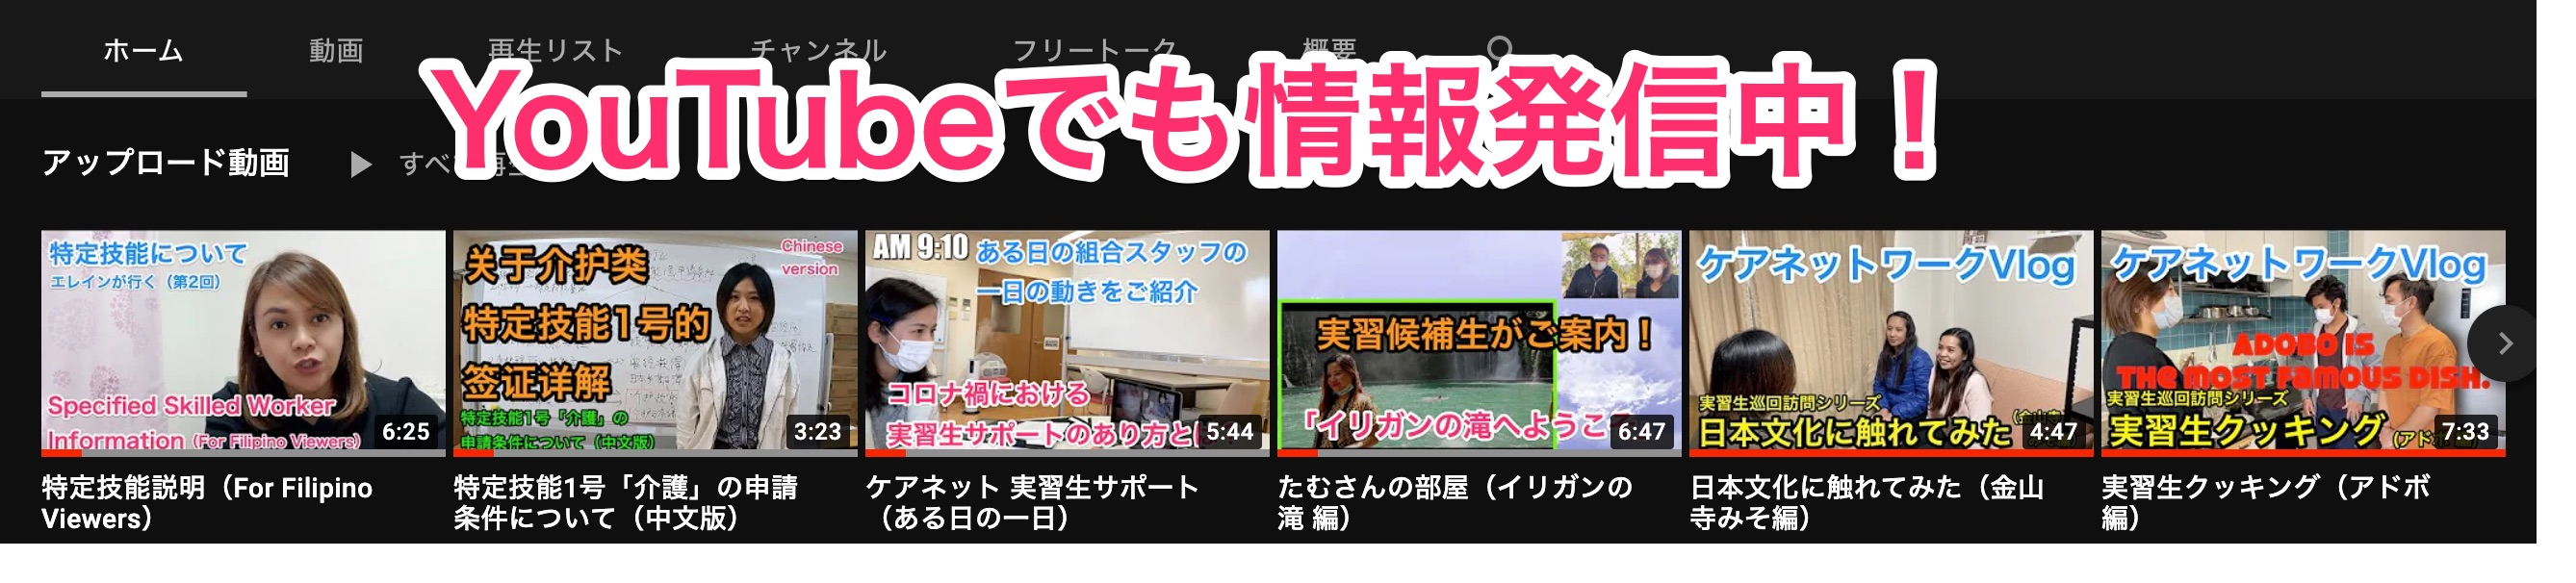 YouTubeでも情報発信中